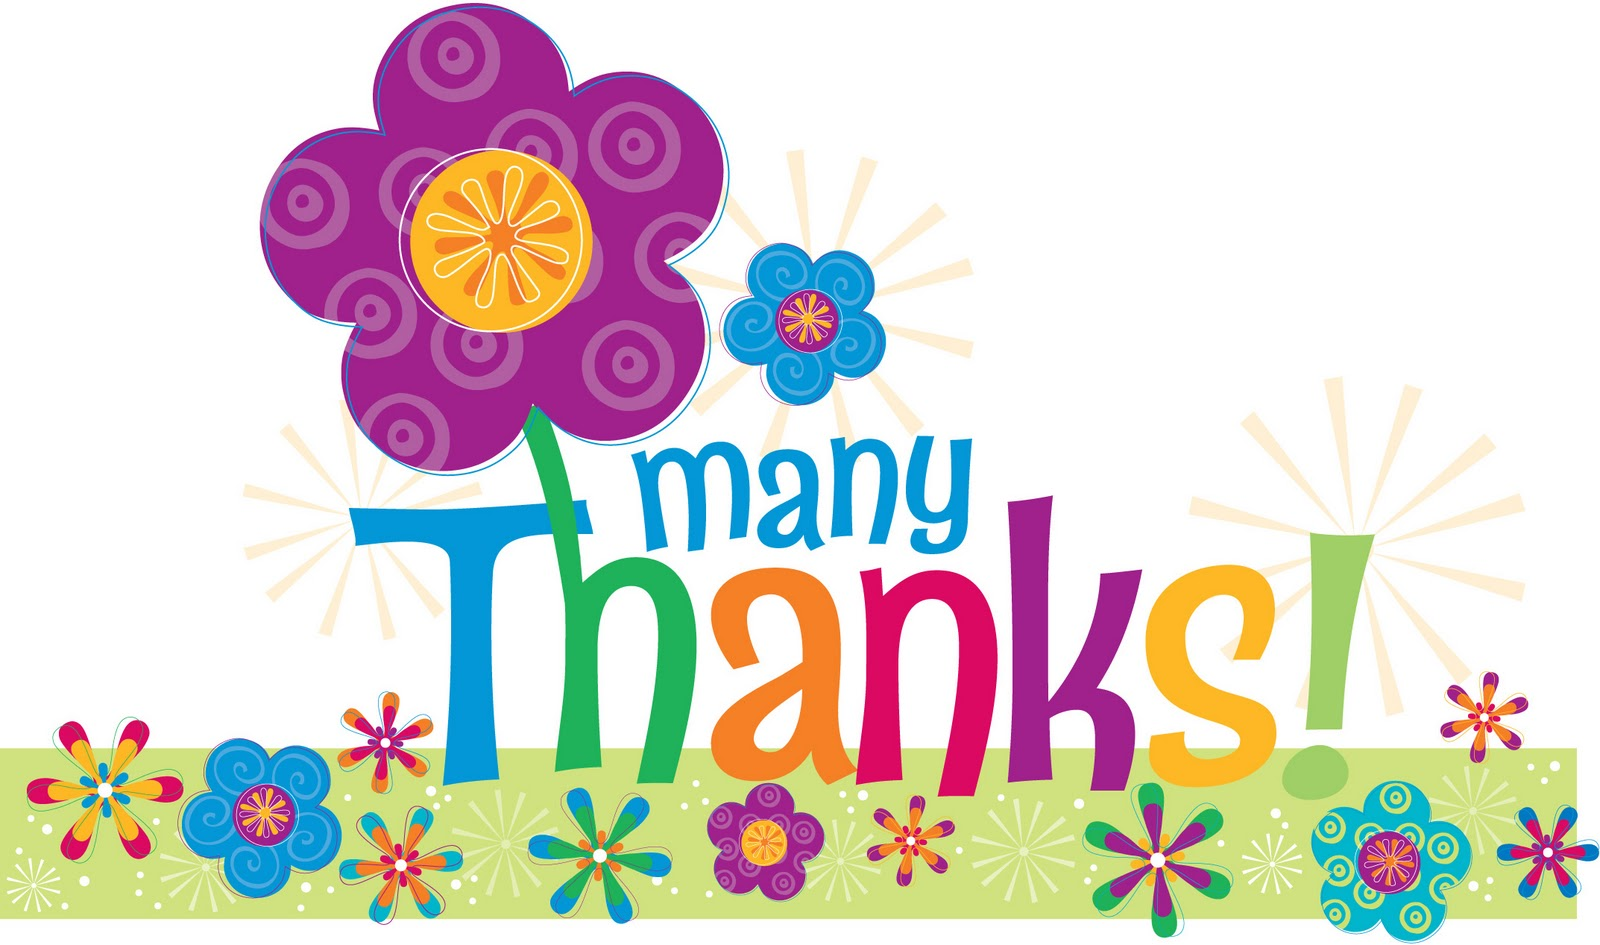 Thank You For Lunch Clipart-Thank You For Lunch Clipart-16